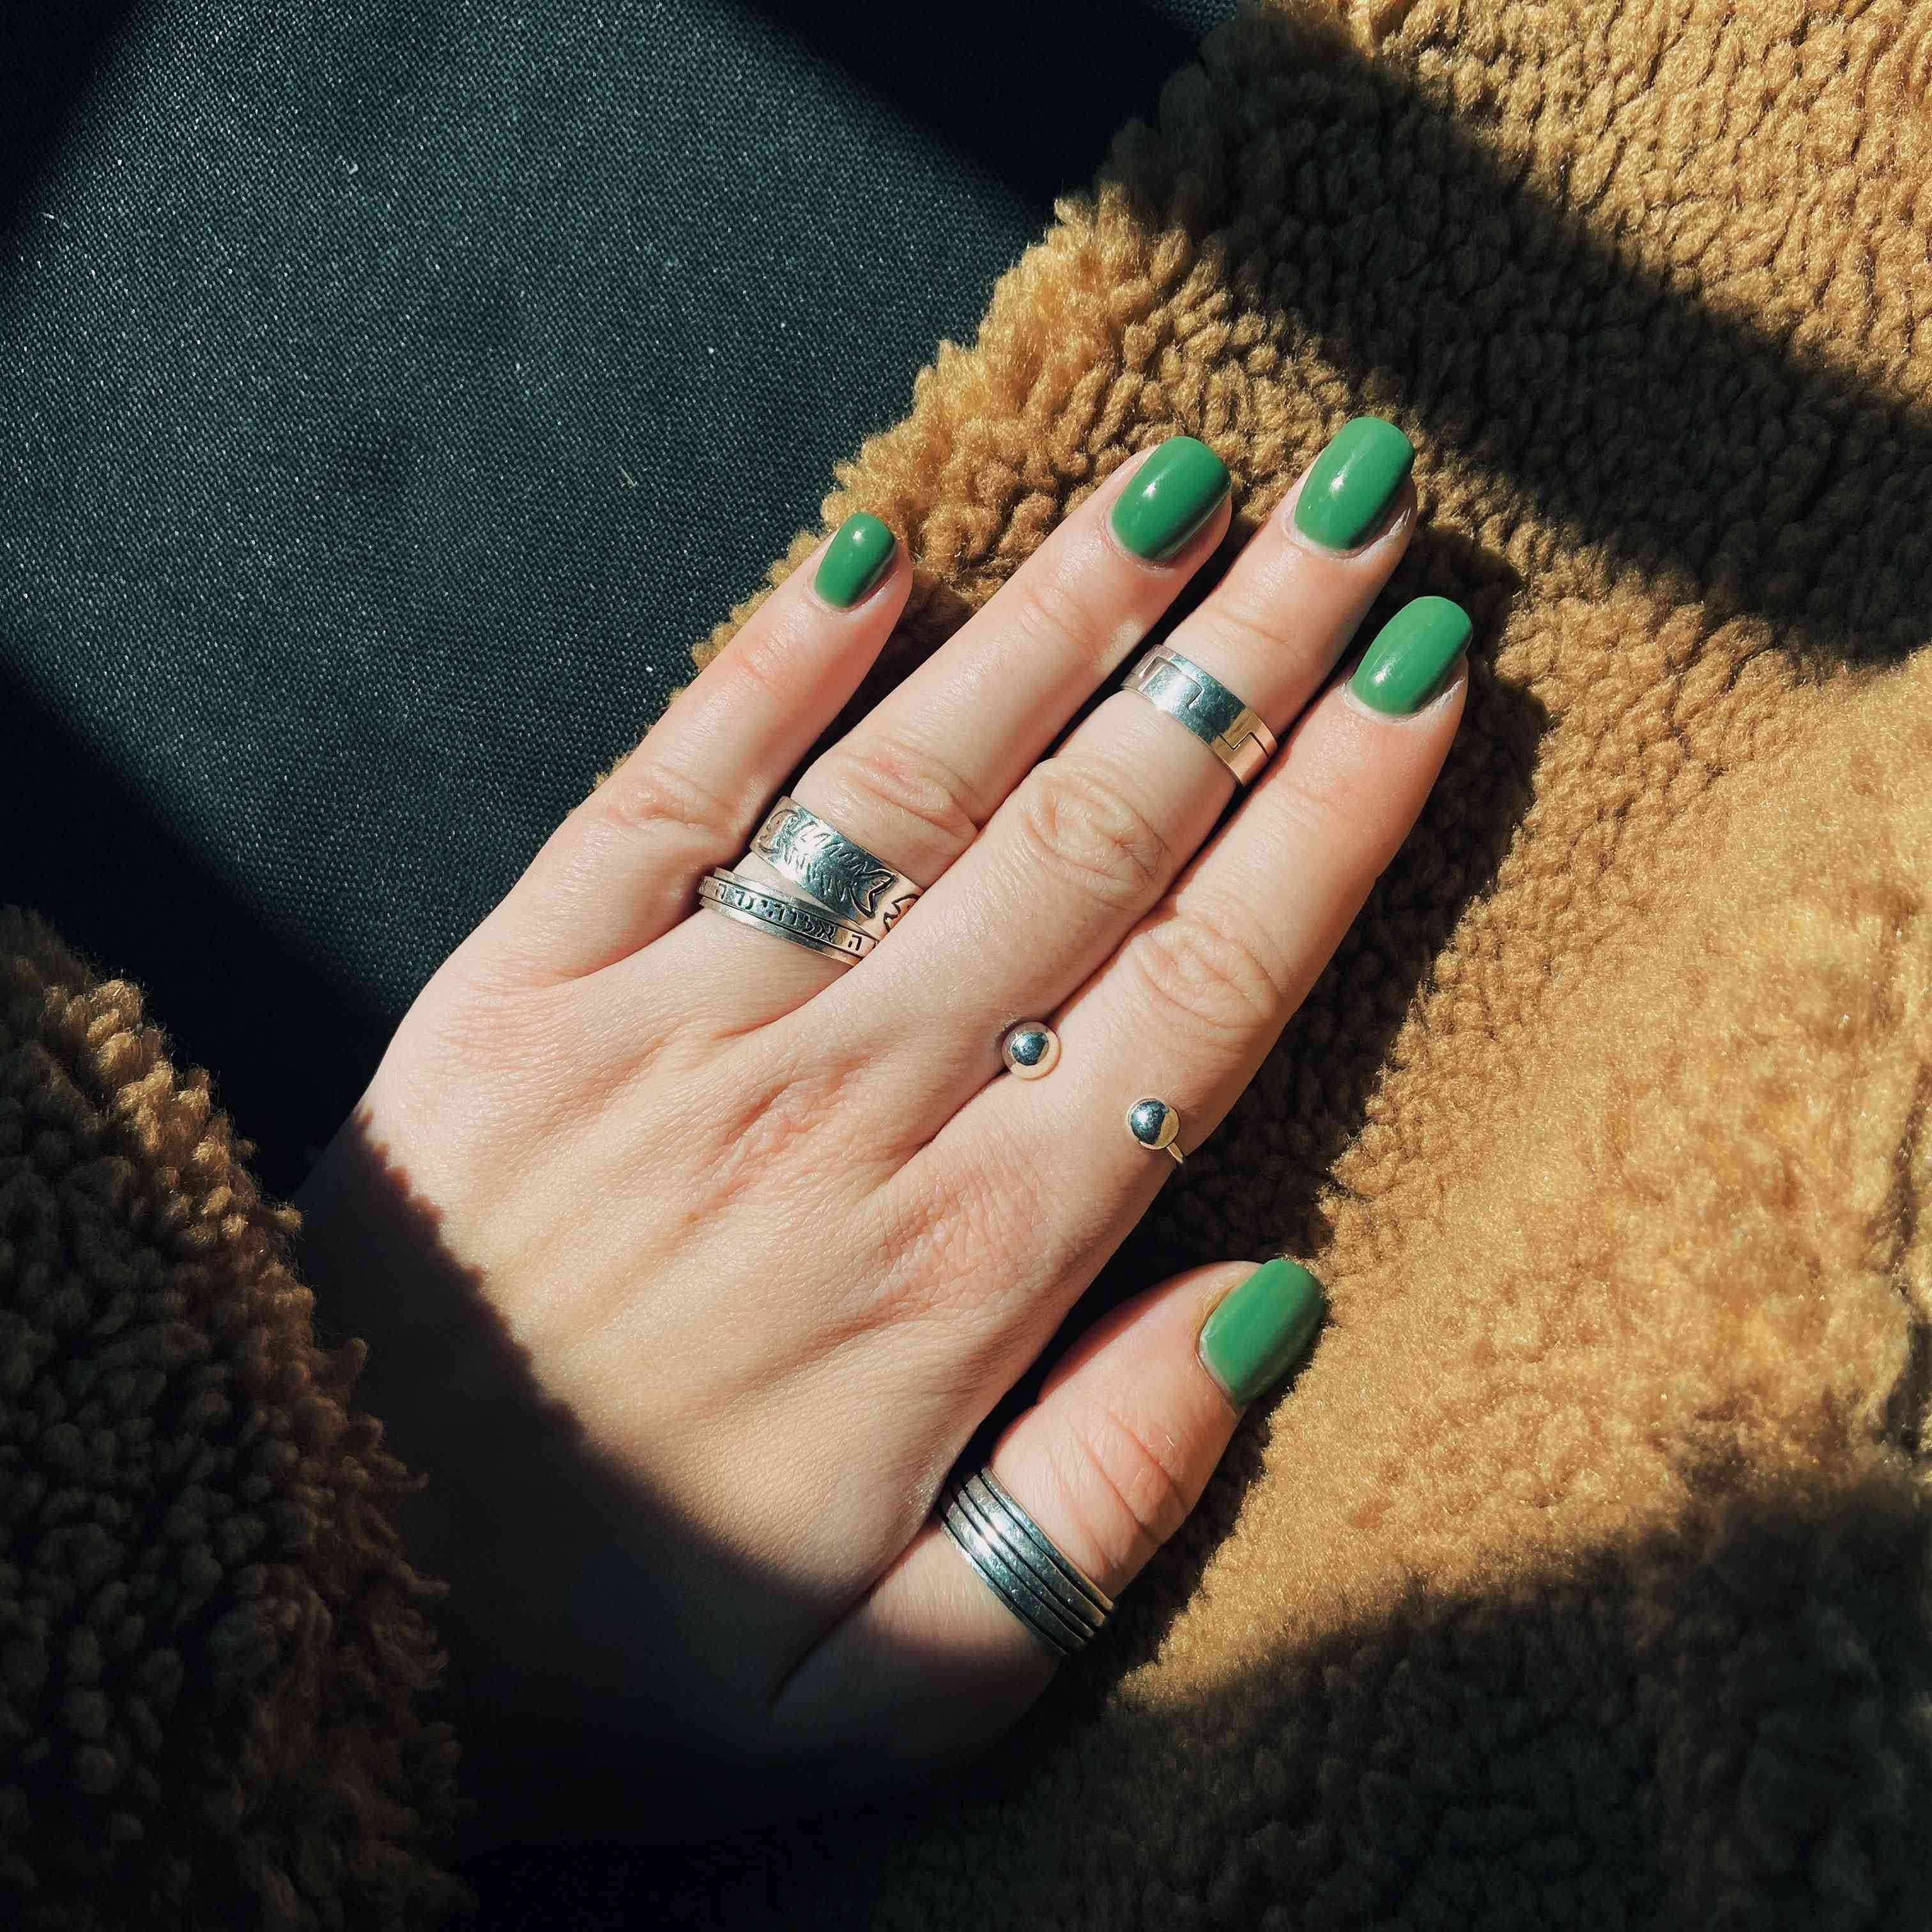 green manicure against furry fabric with silver rings